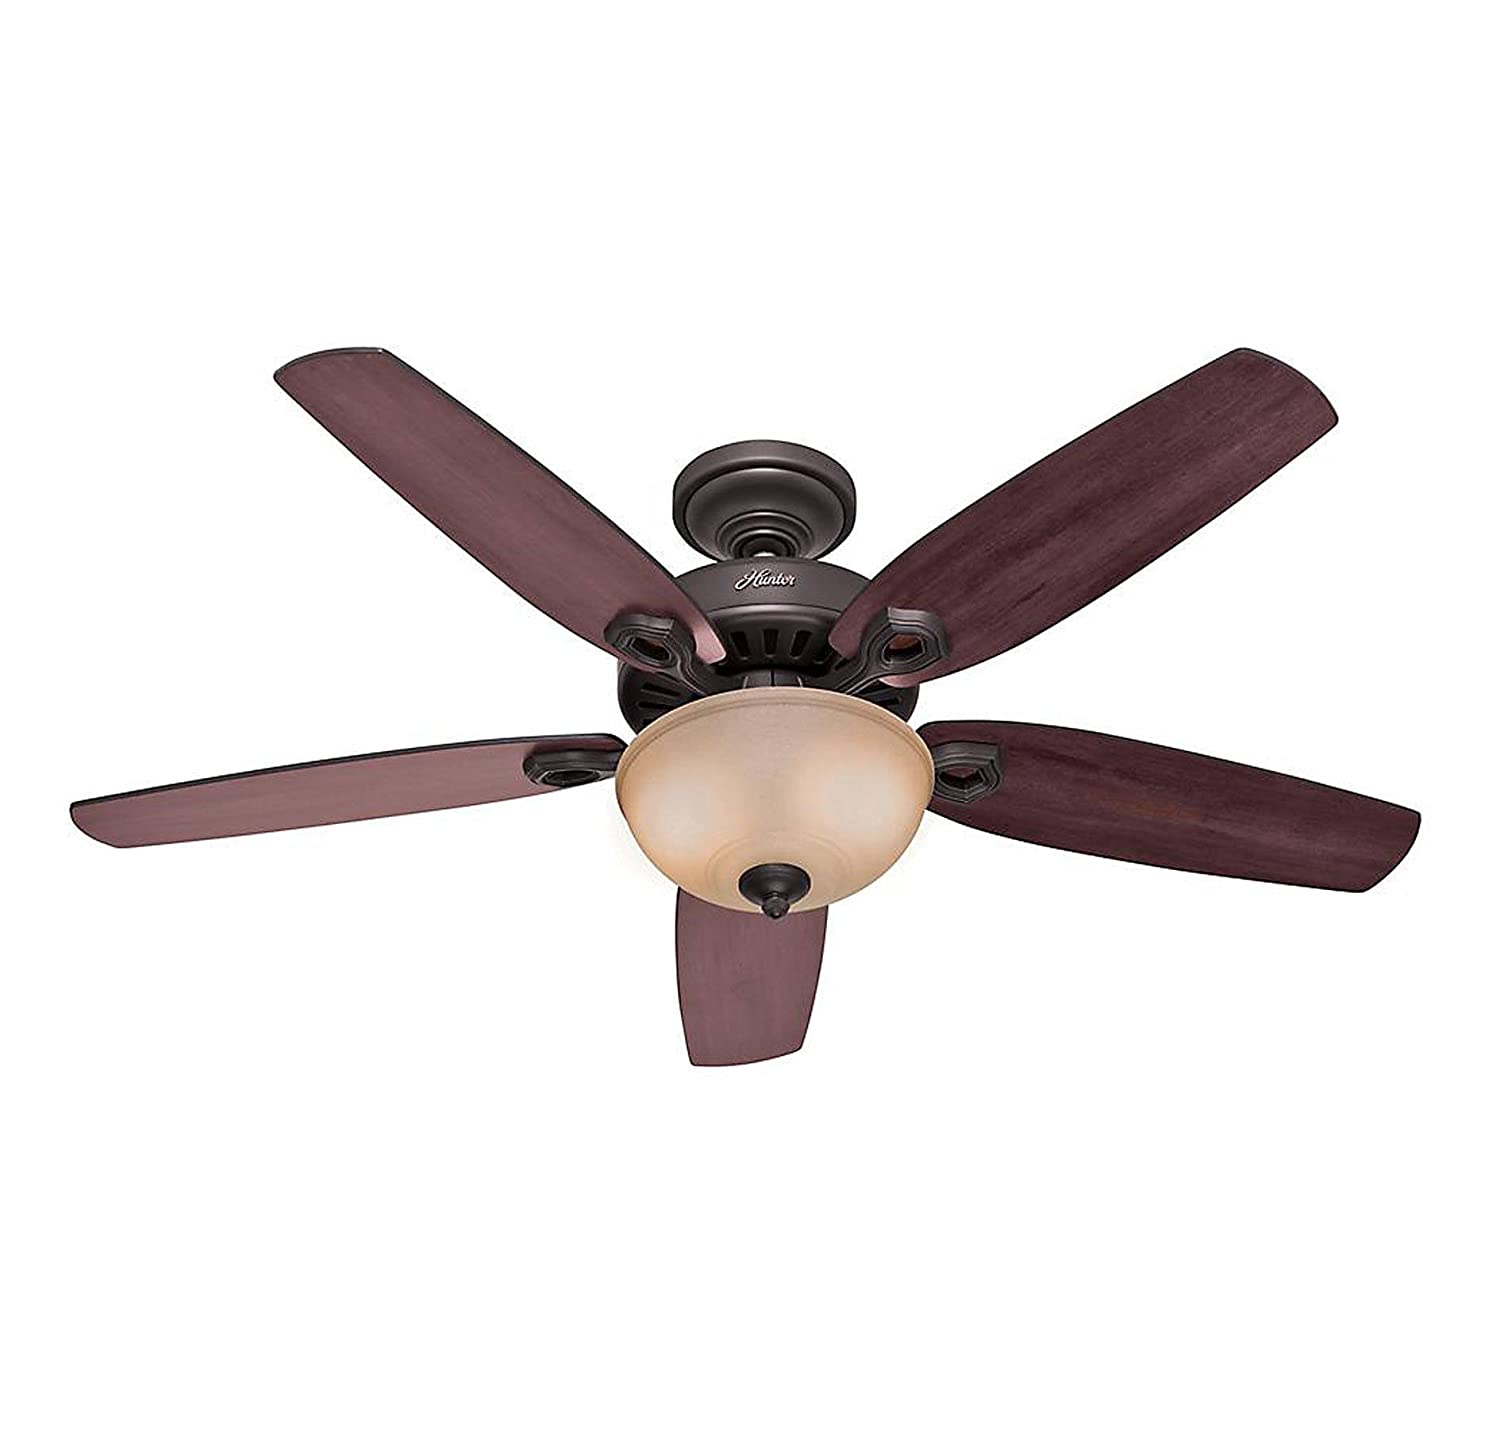 Hunter 53091 Builder Deluxe 5-Blade Single Light Ceiling Fan with Brazilian Cherry/Stained Oak Blades and Piped Toffee Glass Light Bowl, 52-Inch, New Bronze Hunter Fan Company